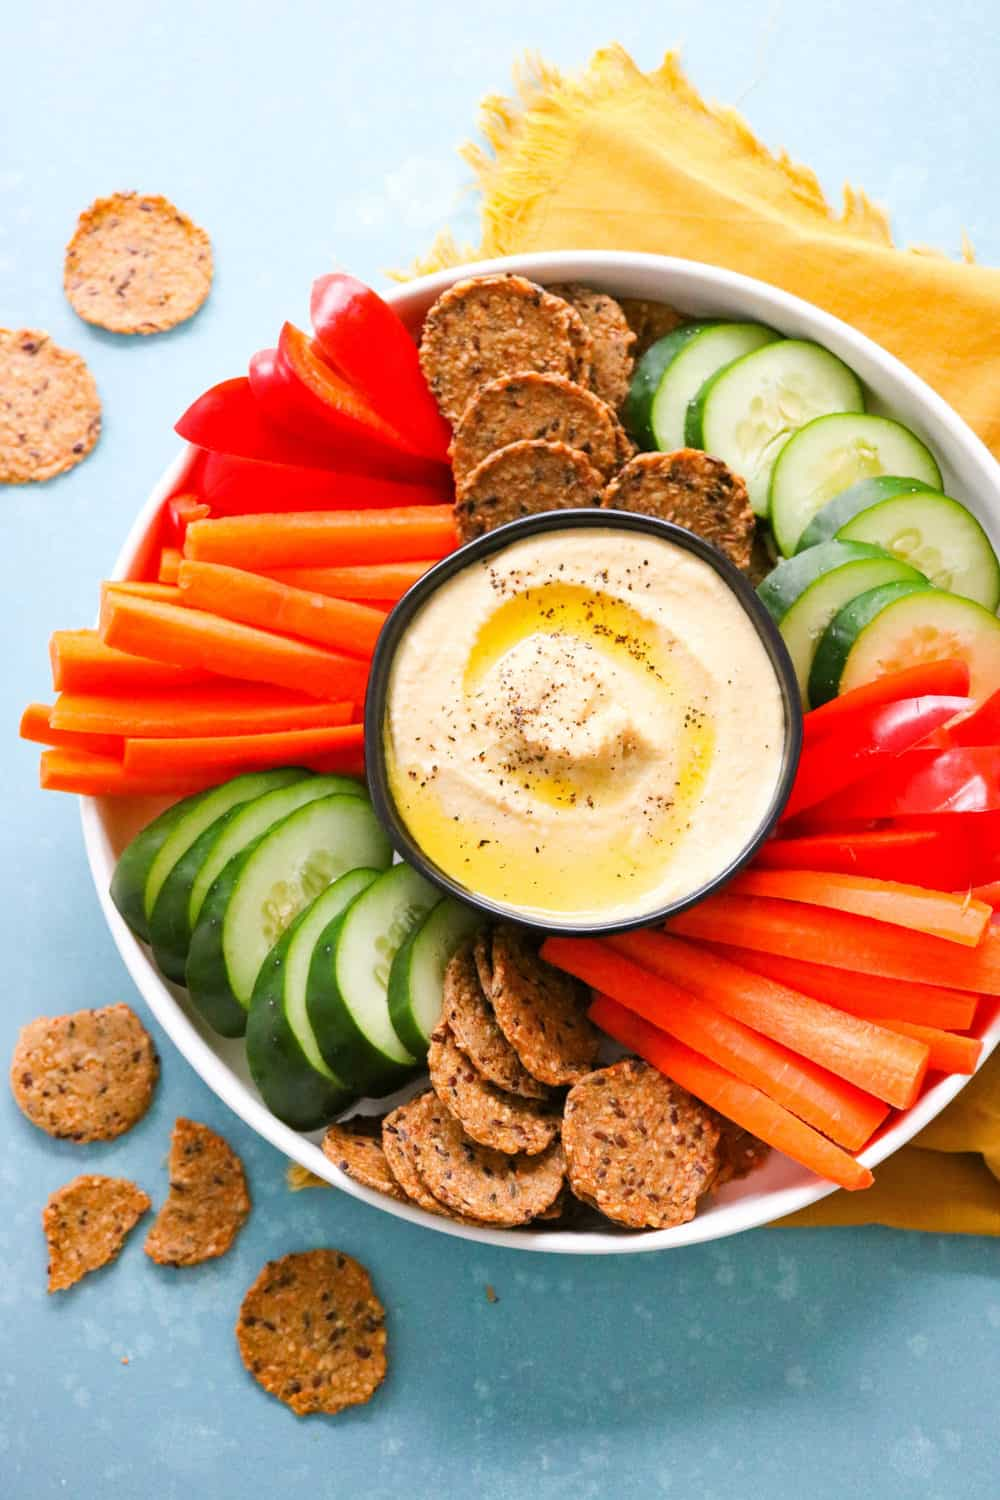 platter of classic homemade hummus with carrots and other veggies plus crackers around it